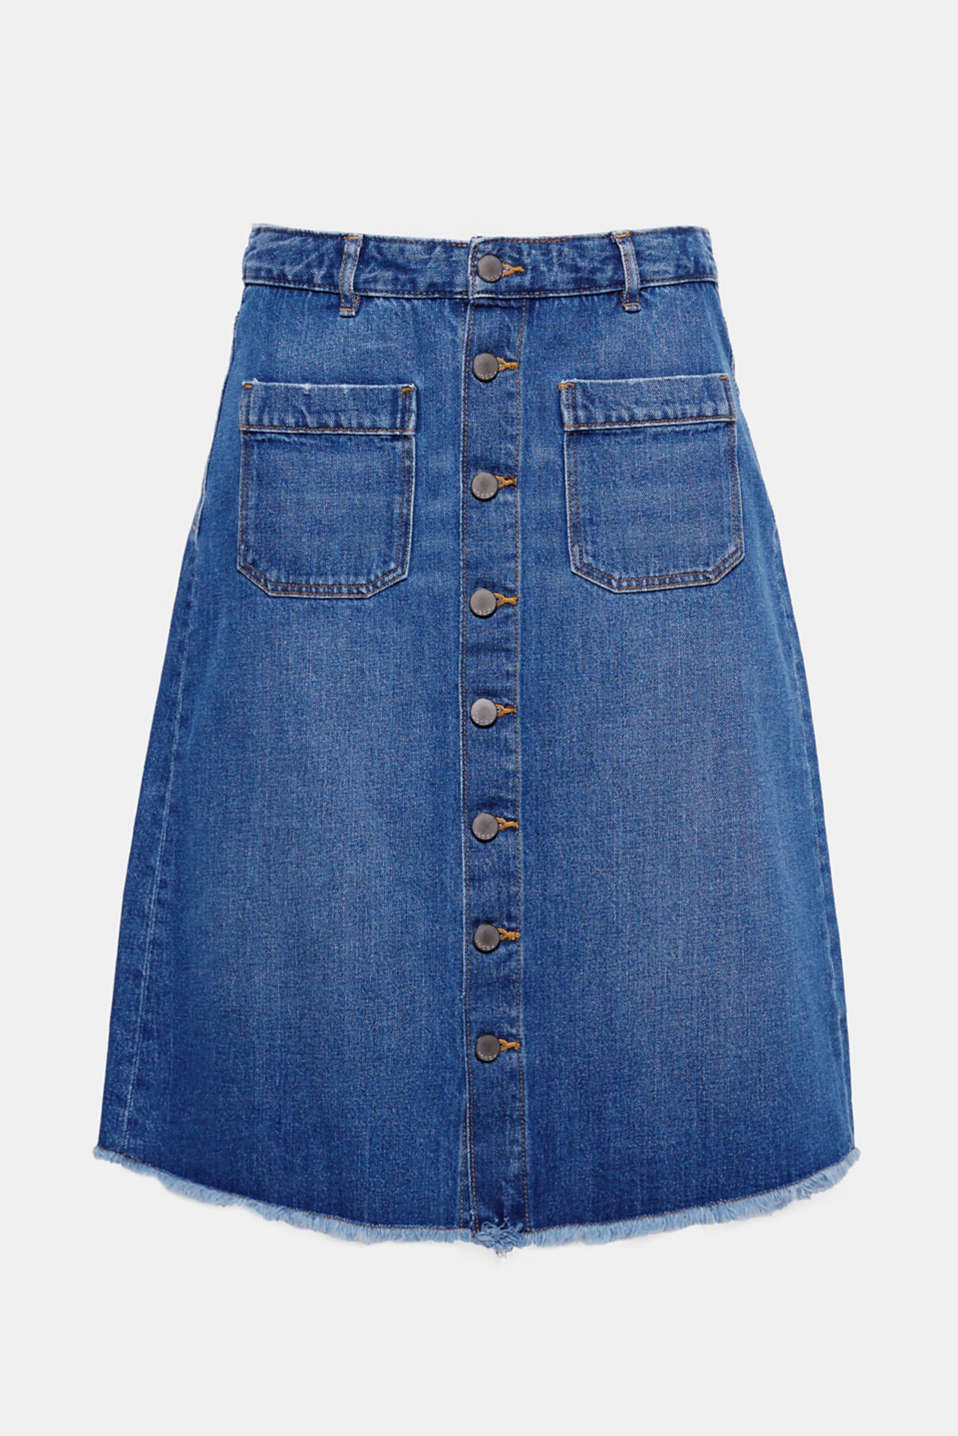 Our denim favourite: this flared skirt with a button placket, stylish midi length and casual frayed hems.